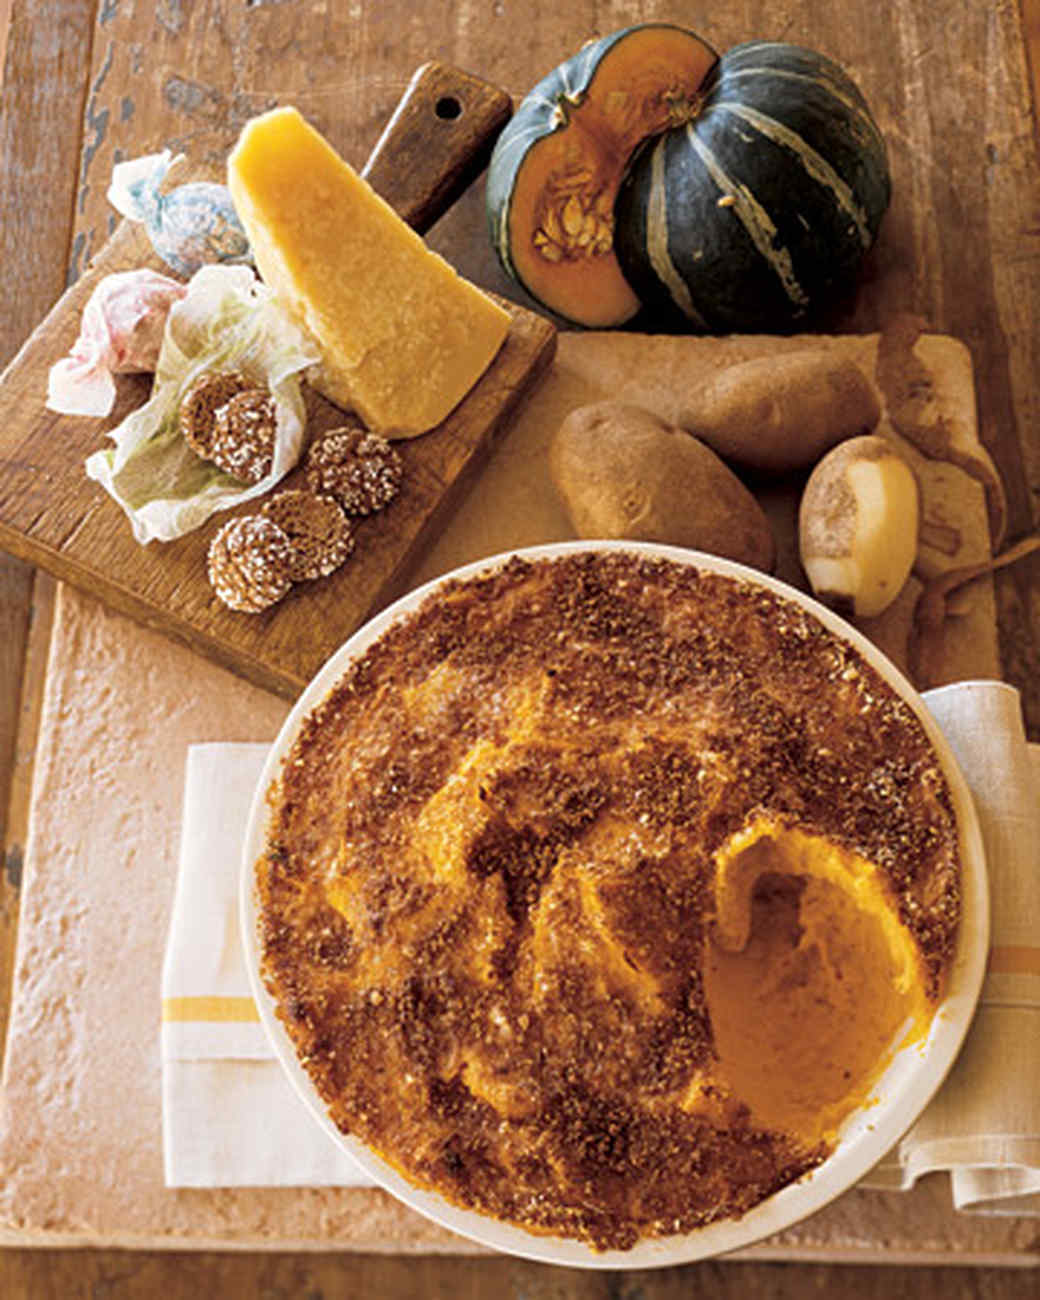 Mashed Squash and Potatoes with Amaretti